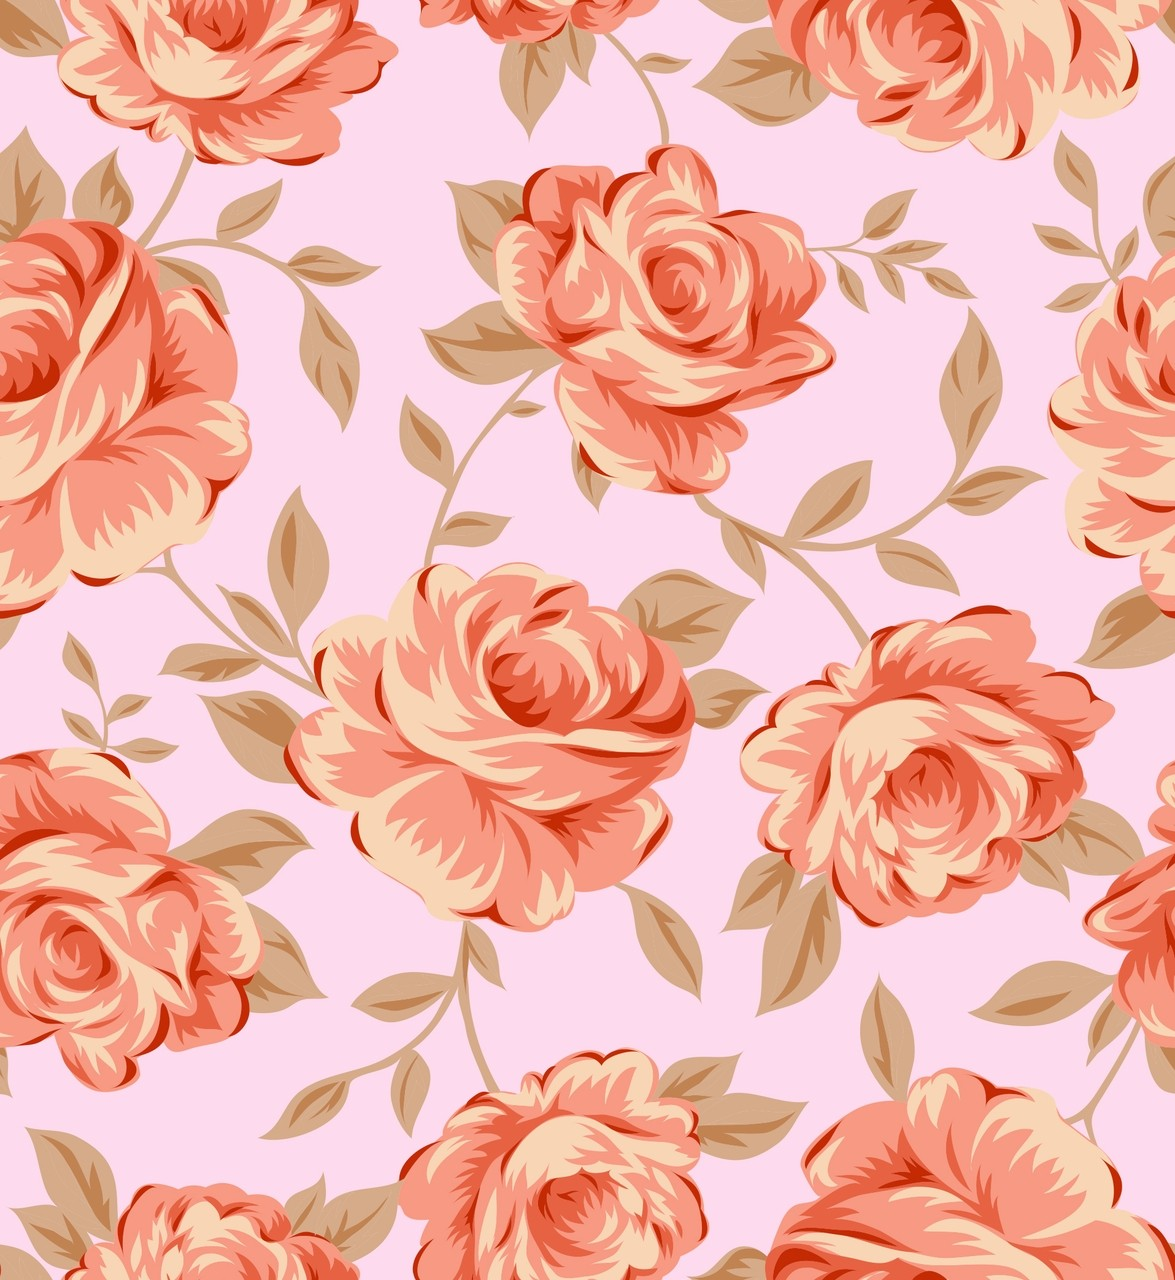 Wallpaper Hd Floral Flower Pattern Ogq Backgrounds Hd